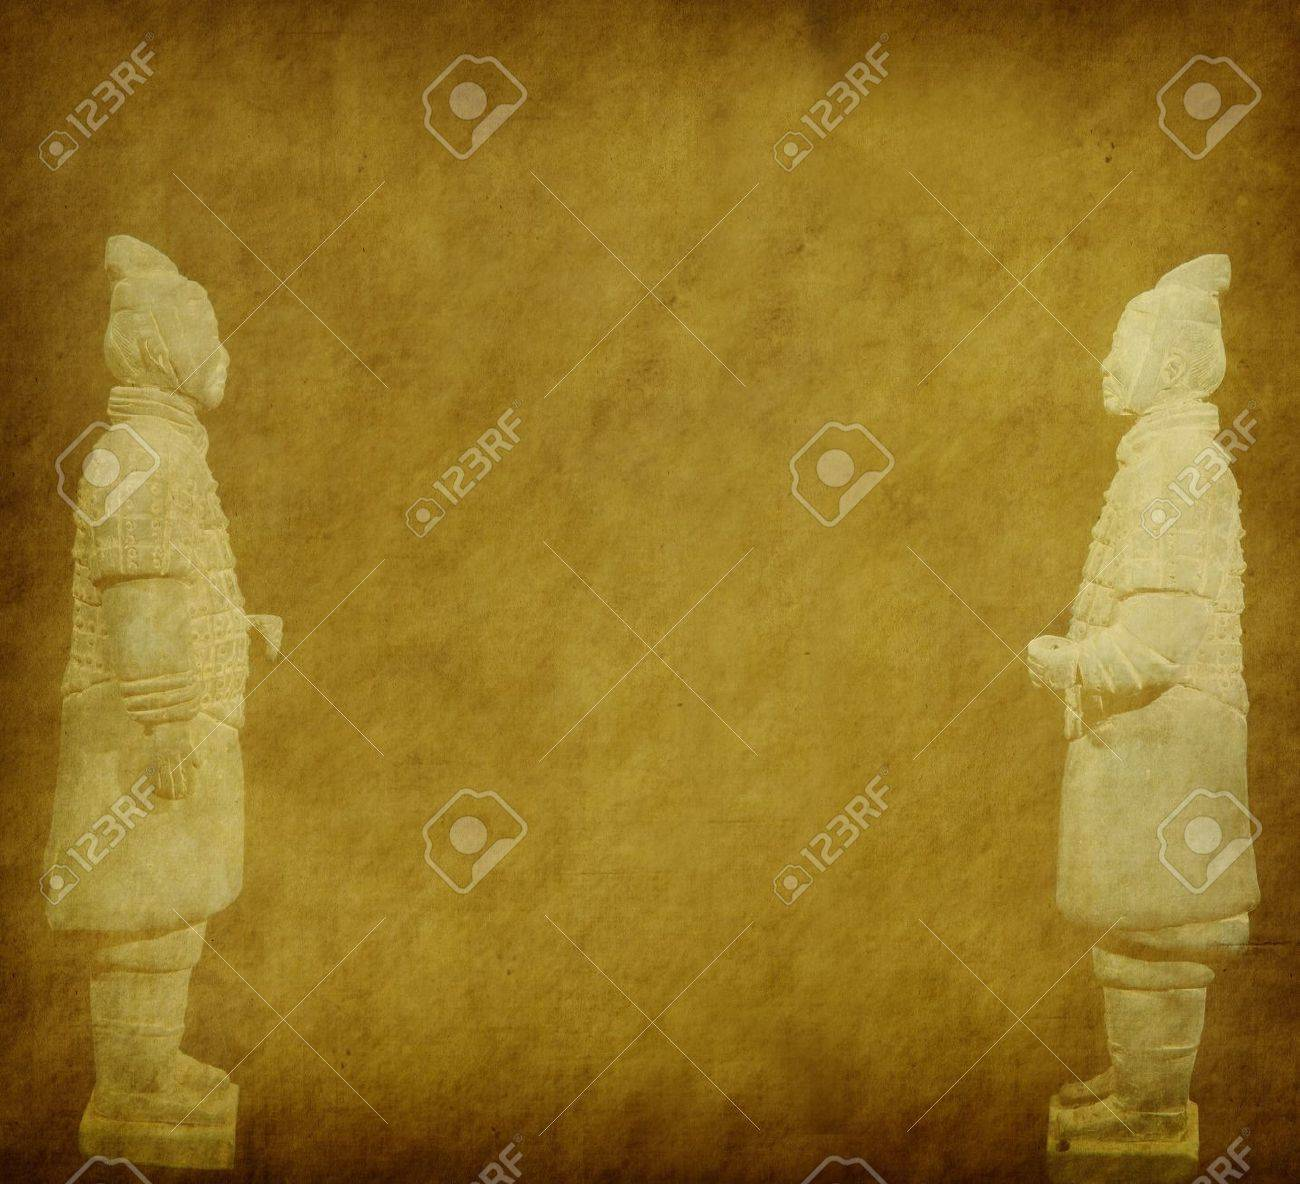 Terracotta Army Figure In China On Old Grunge Antique Paper Texture ...